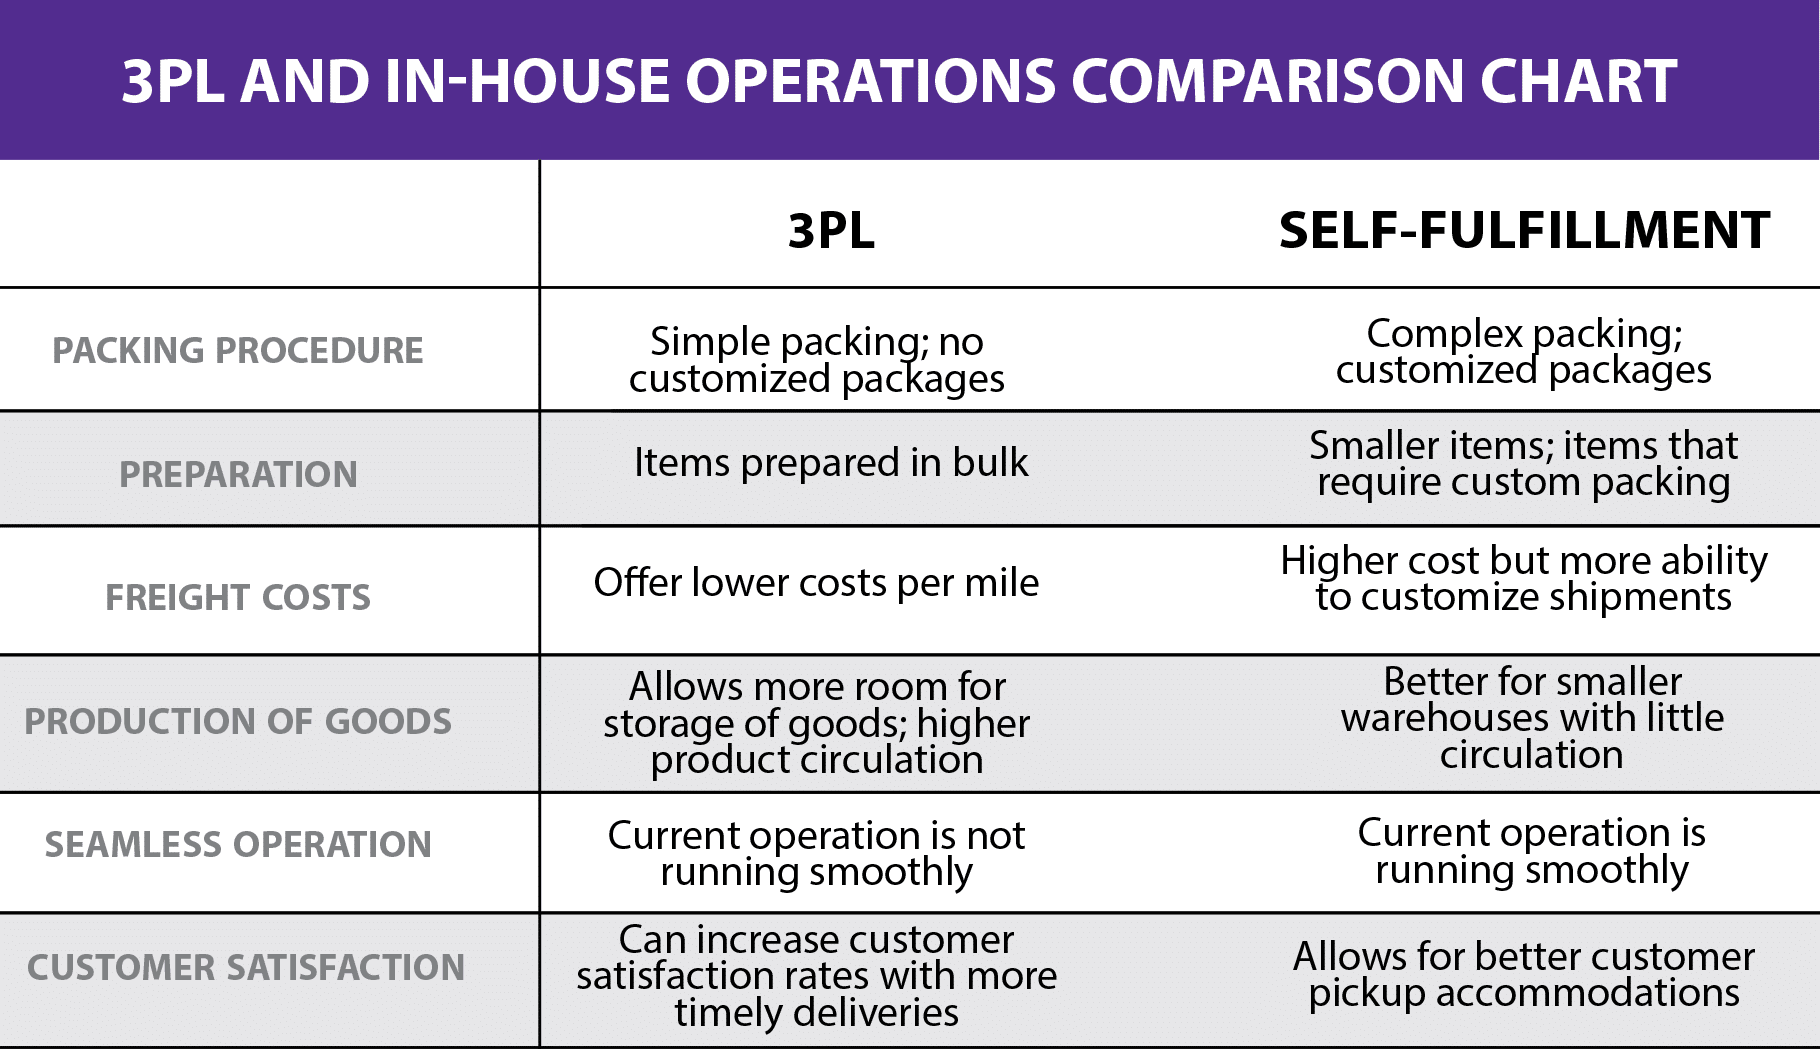 3PL and In-house Operations Comparison